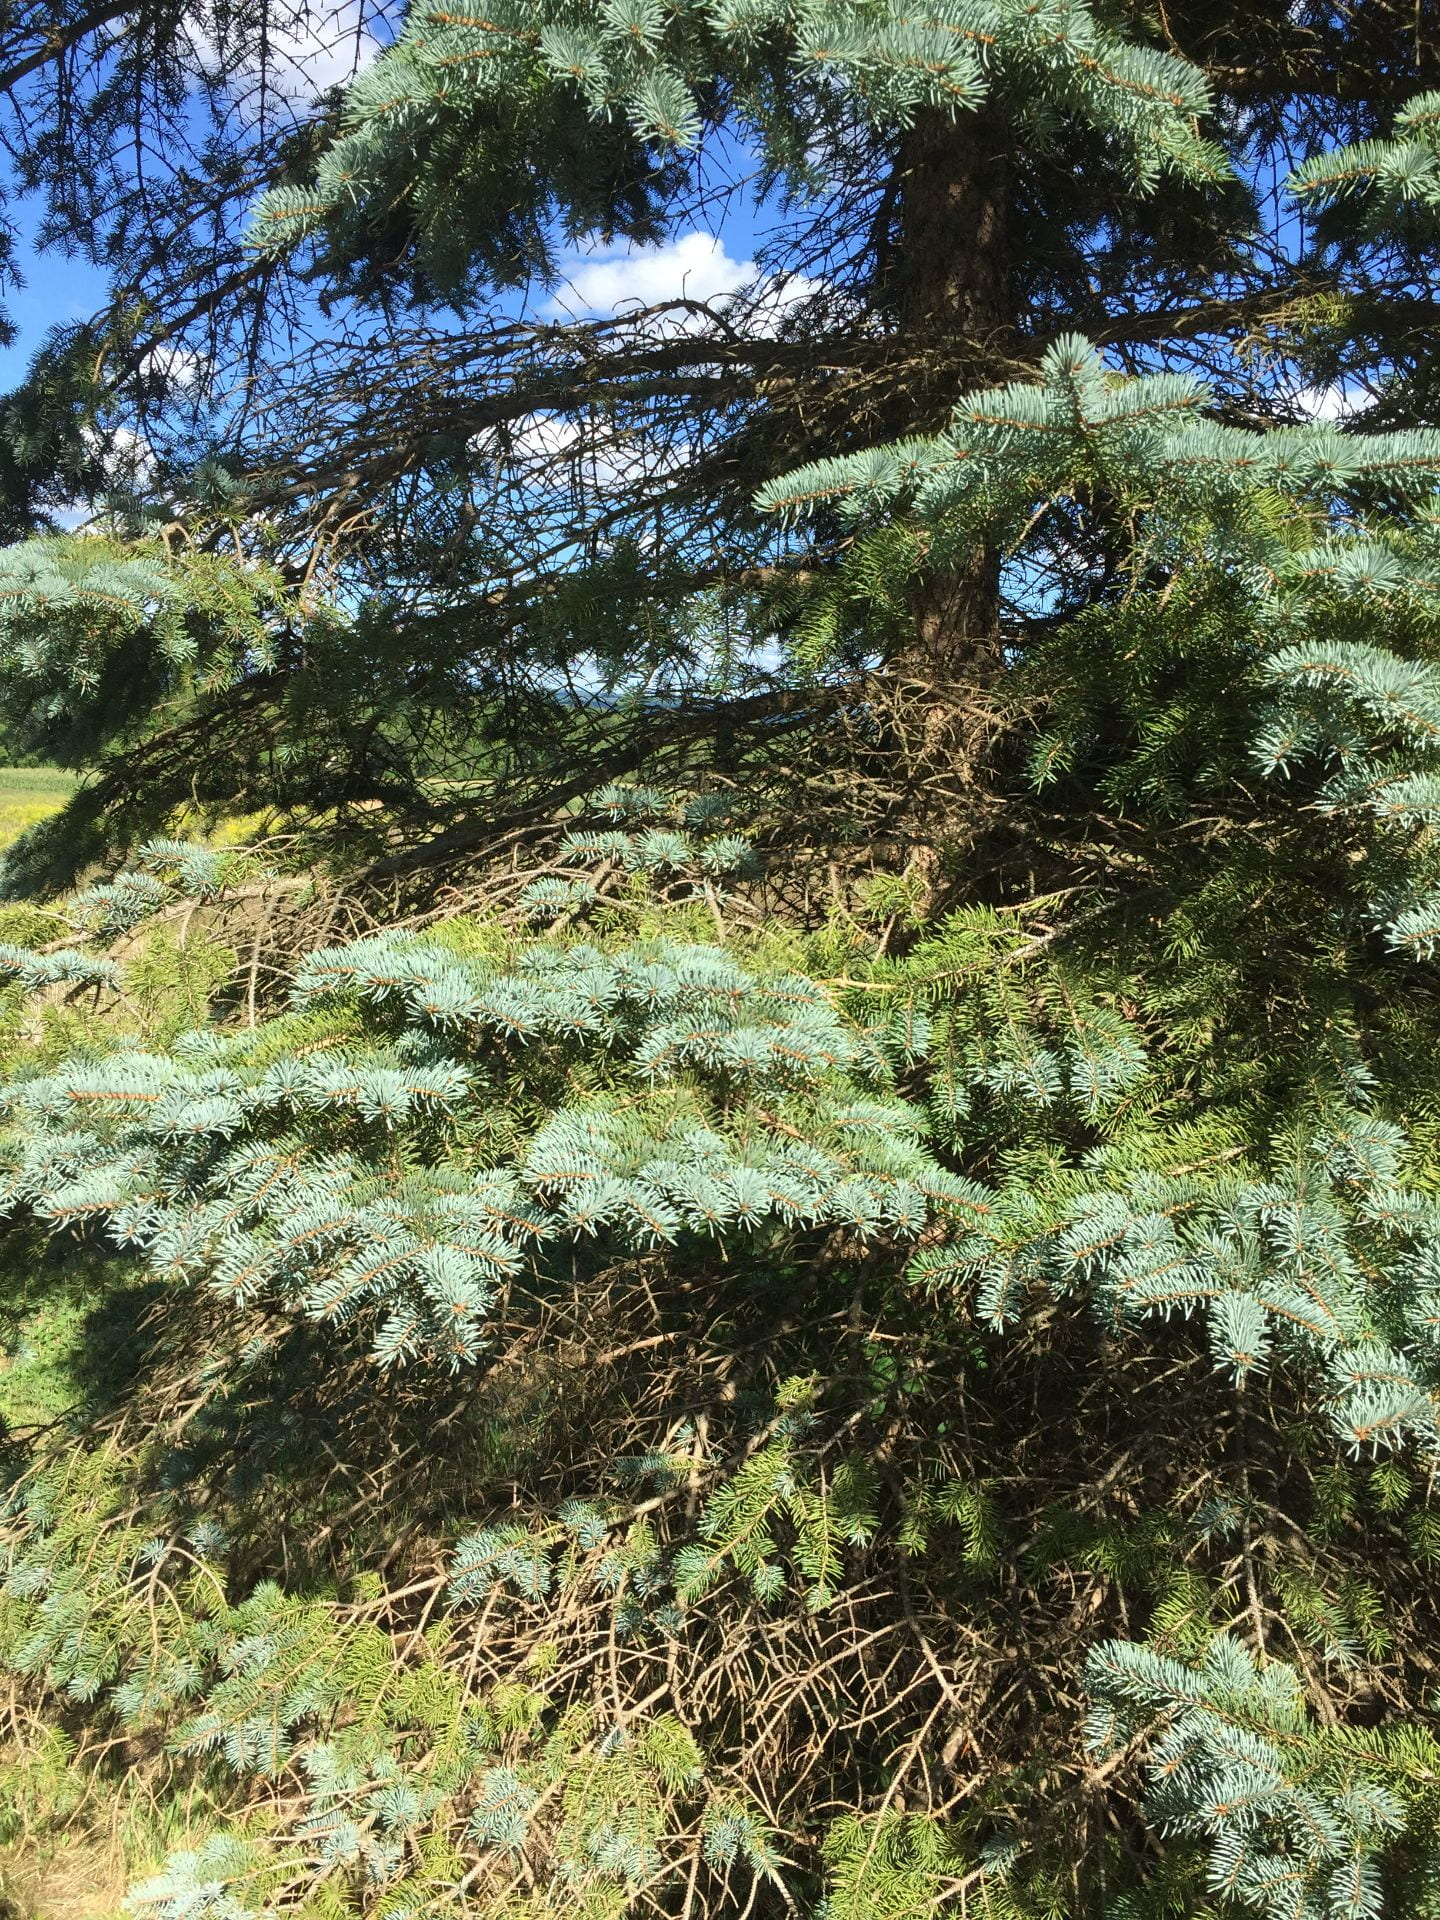 photo shows bare spots in blue spruce tree